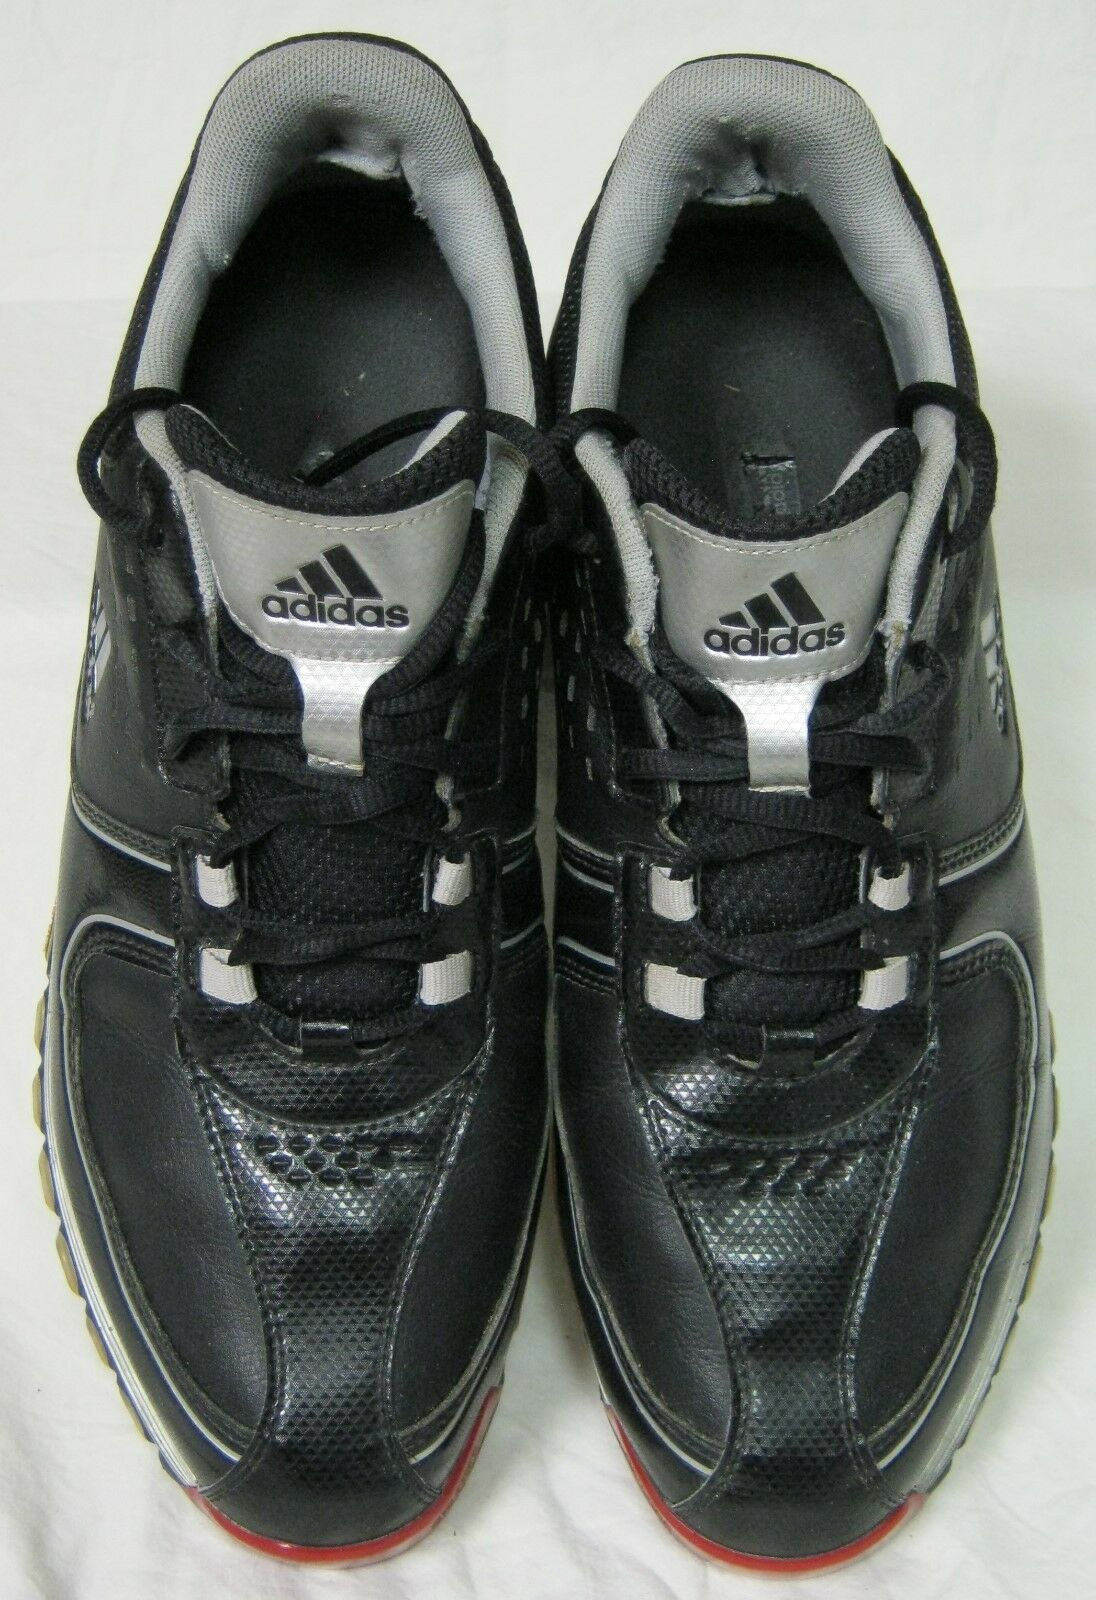 Adidas Formotion Advanced Traxion Technology Golf Shoes | 9 1/2